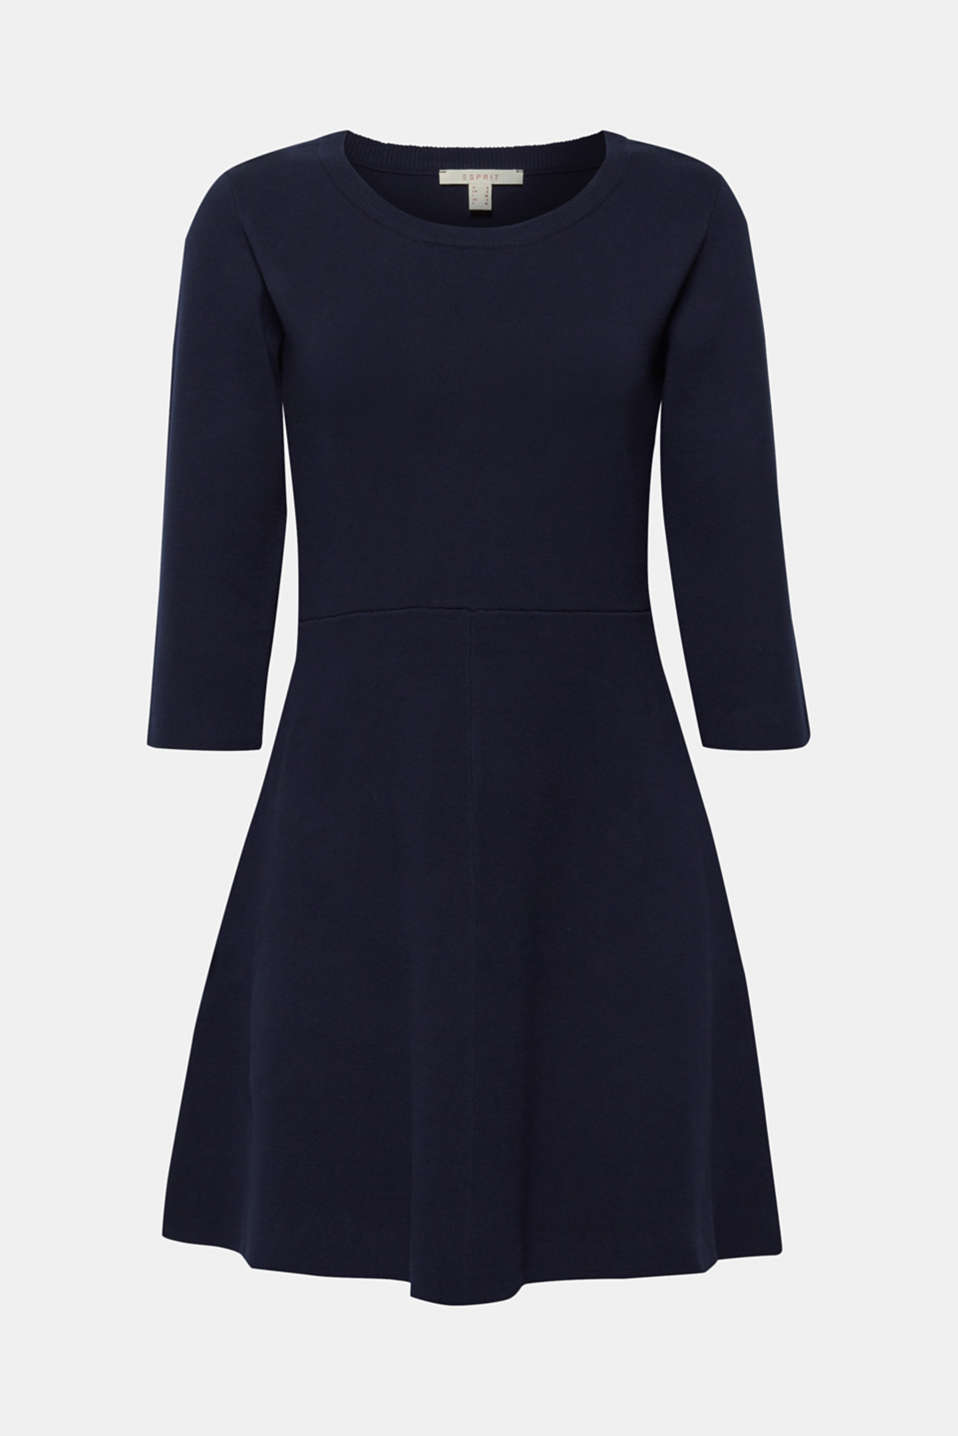 Compact knit dress in an A-line silhouette, NAVY, detail image number 5